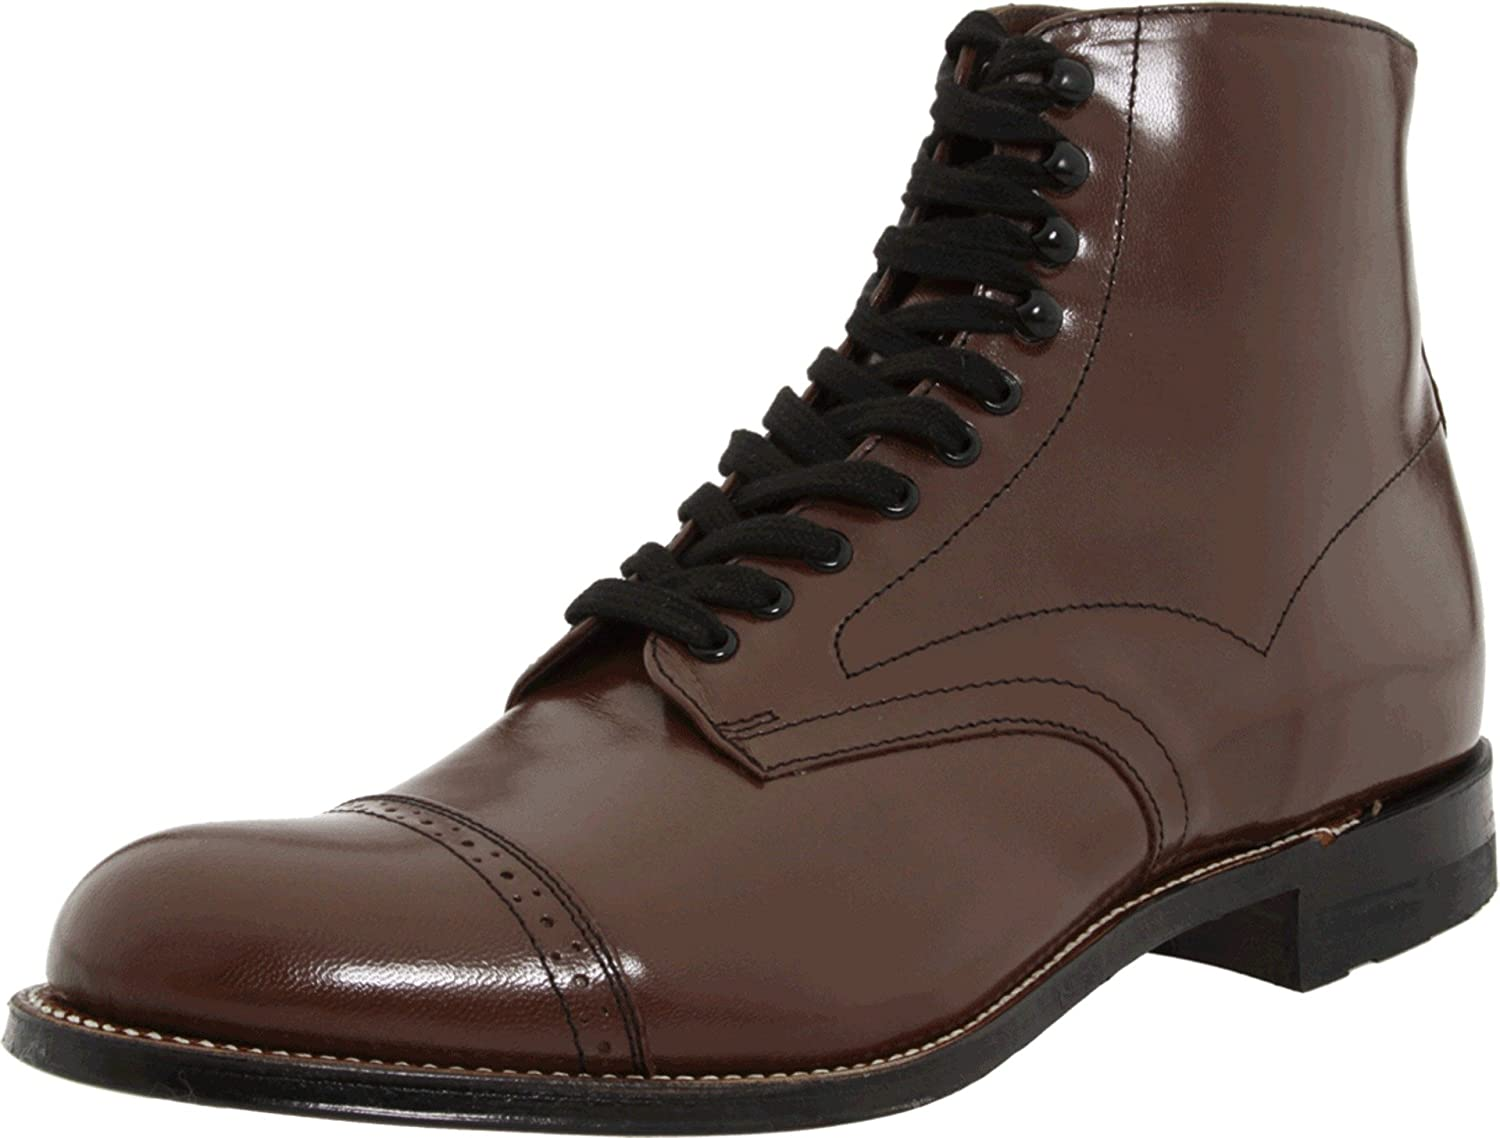 Stacy Adams Men's Victorian Boots and Shoes UK Stacy Adams Mens Madison Cap Toe Boot £96.11 AT vintagedancer.com